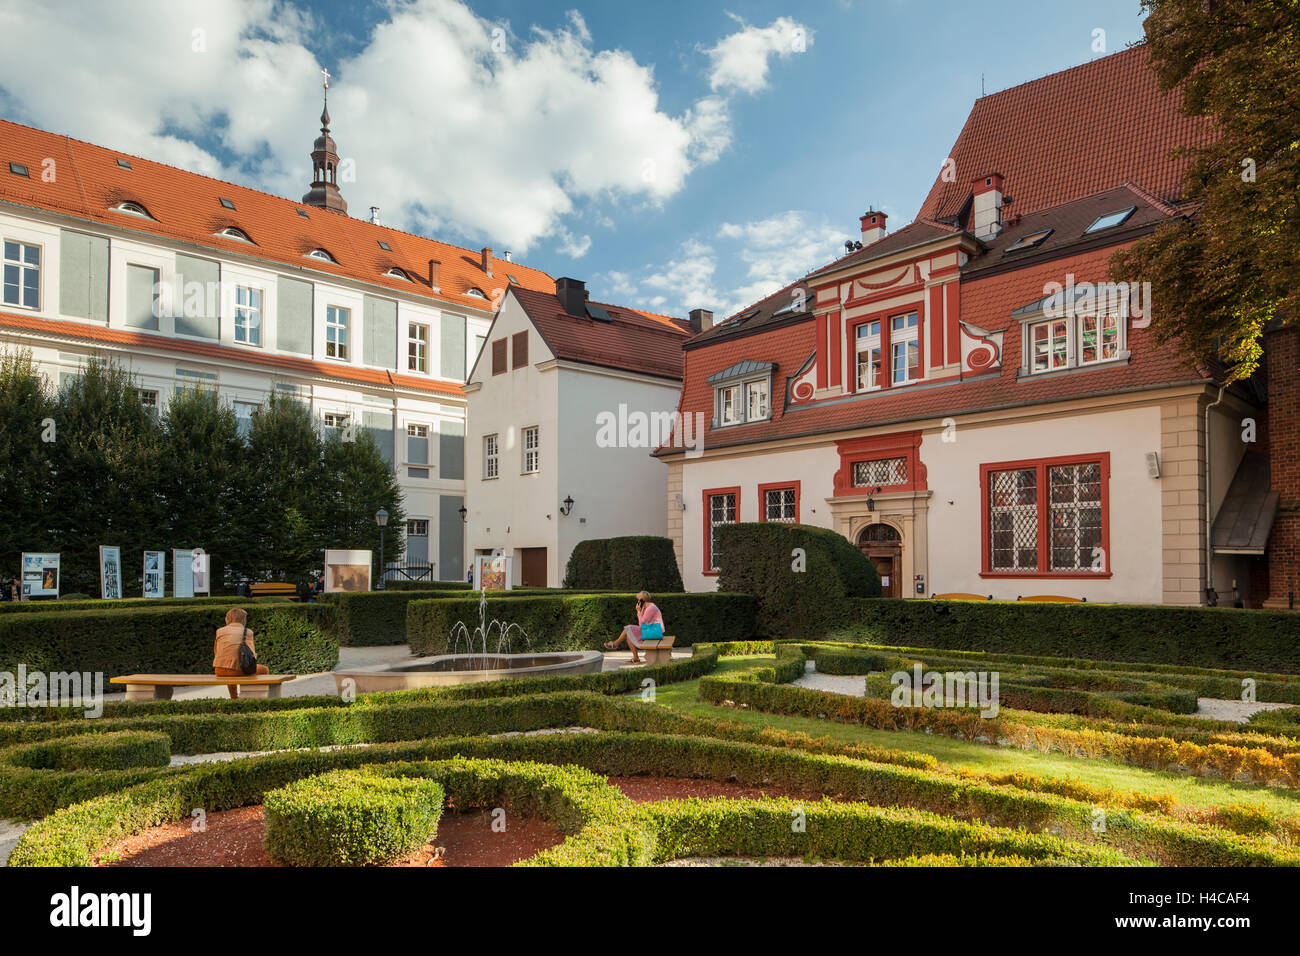 Ossolineum Baroque garden in Wroclaw, Lower Silesia, Poland. - Stock Image